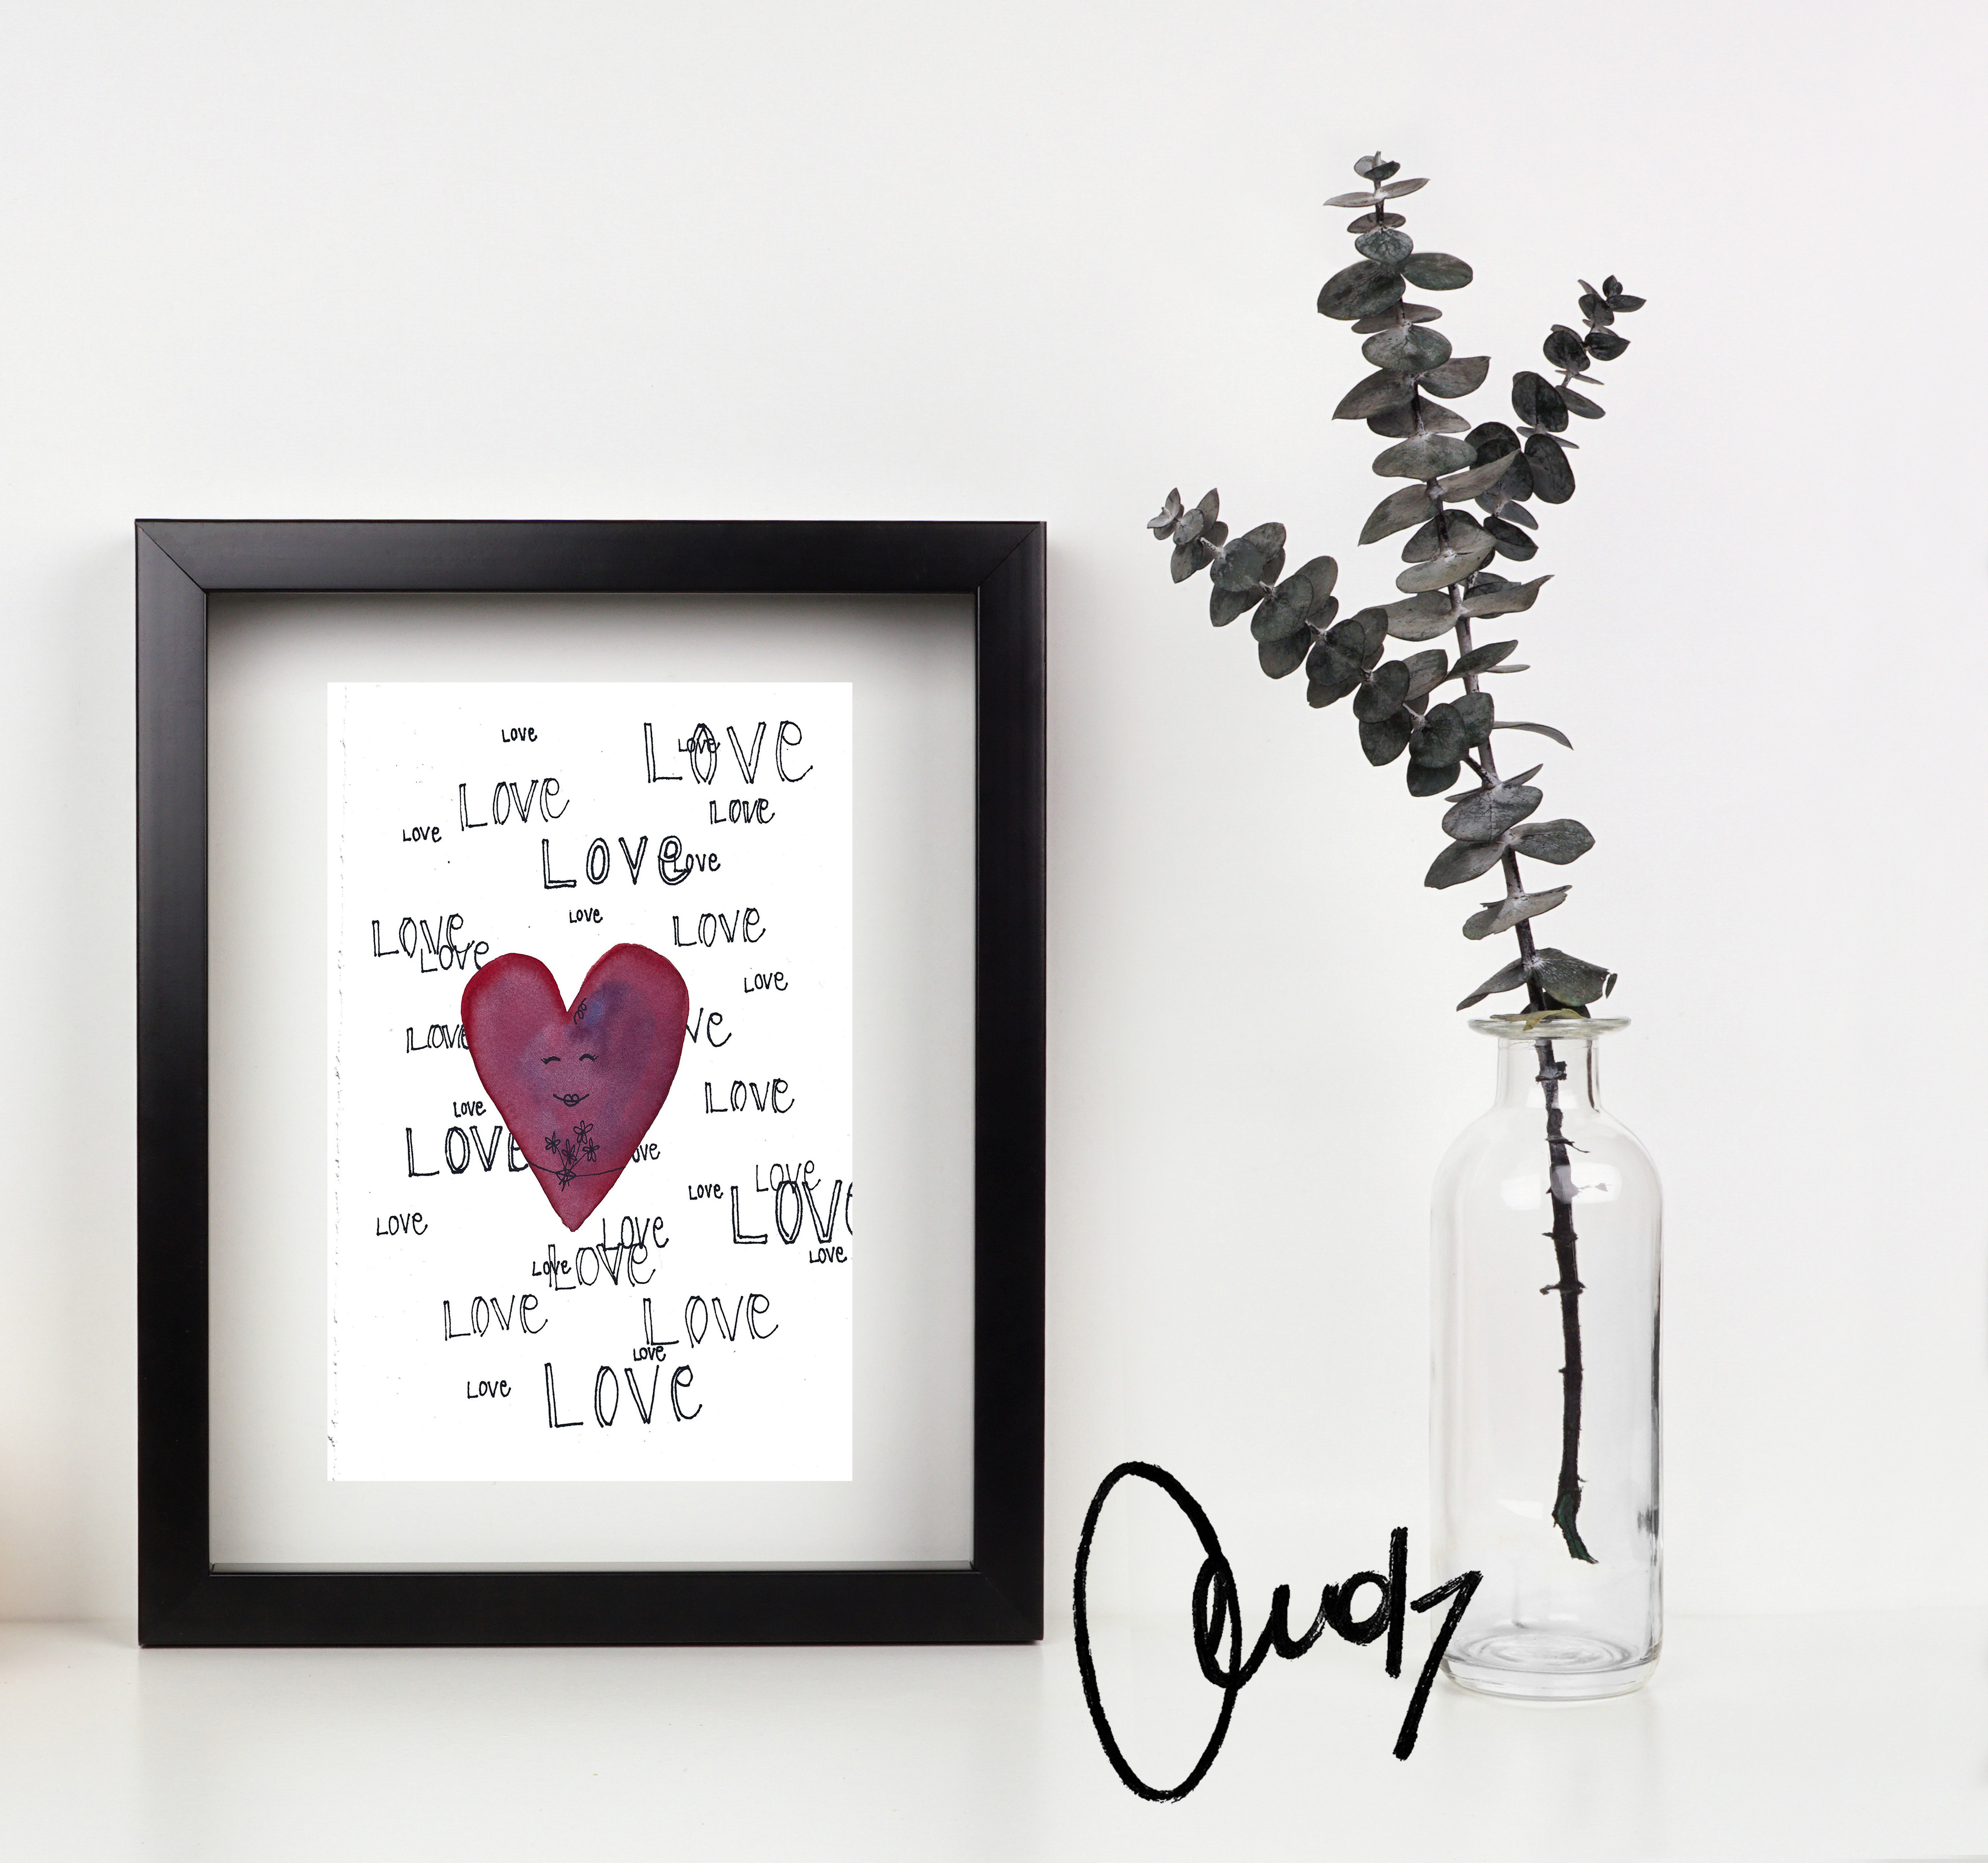 Love - Disponible/Available